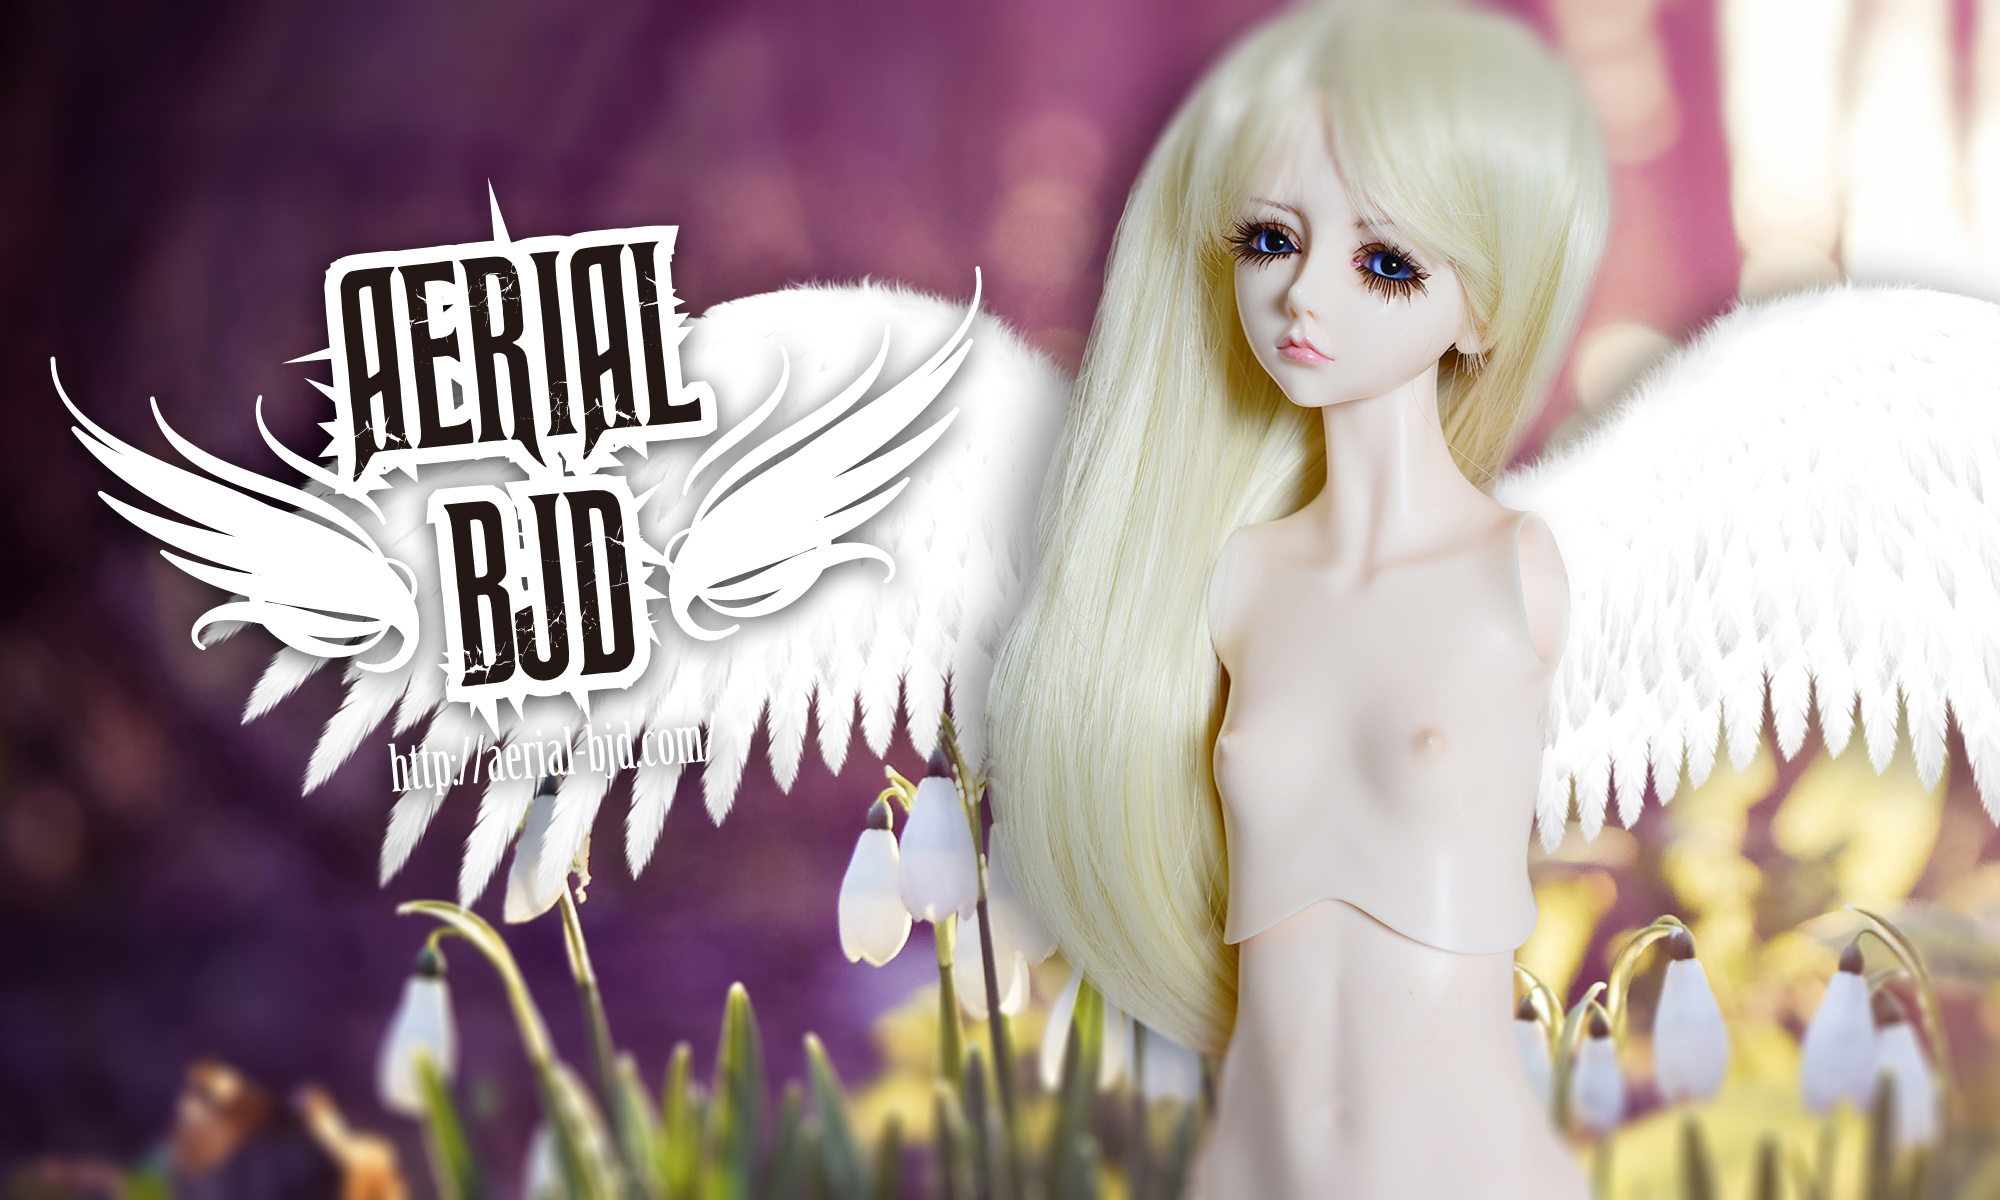 AERIALBJD Eva White Angel Background Image